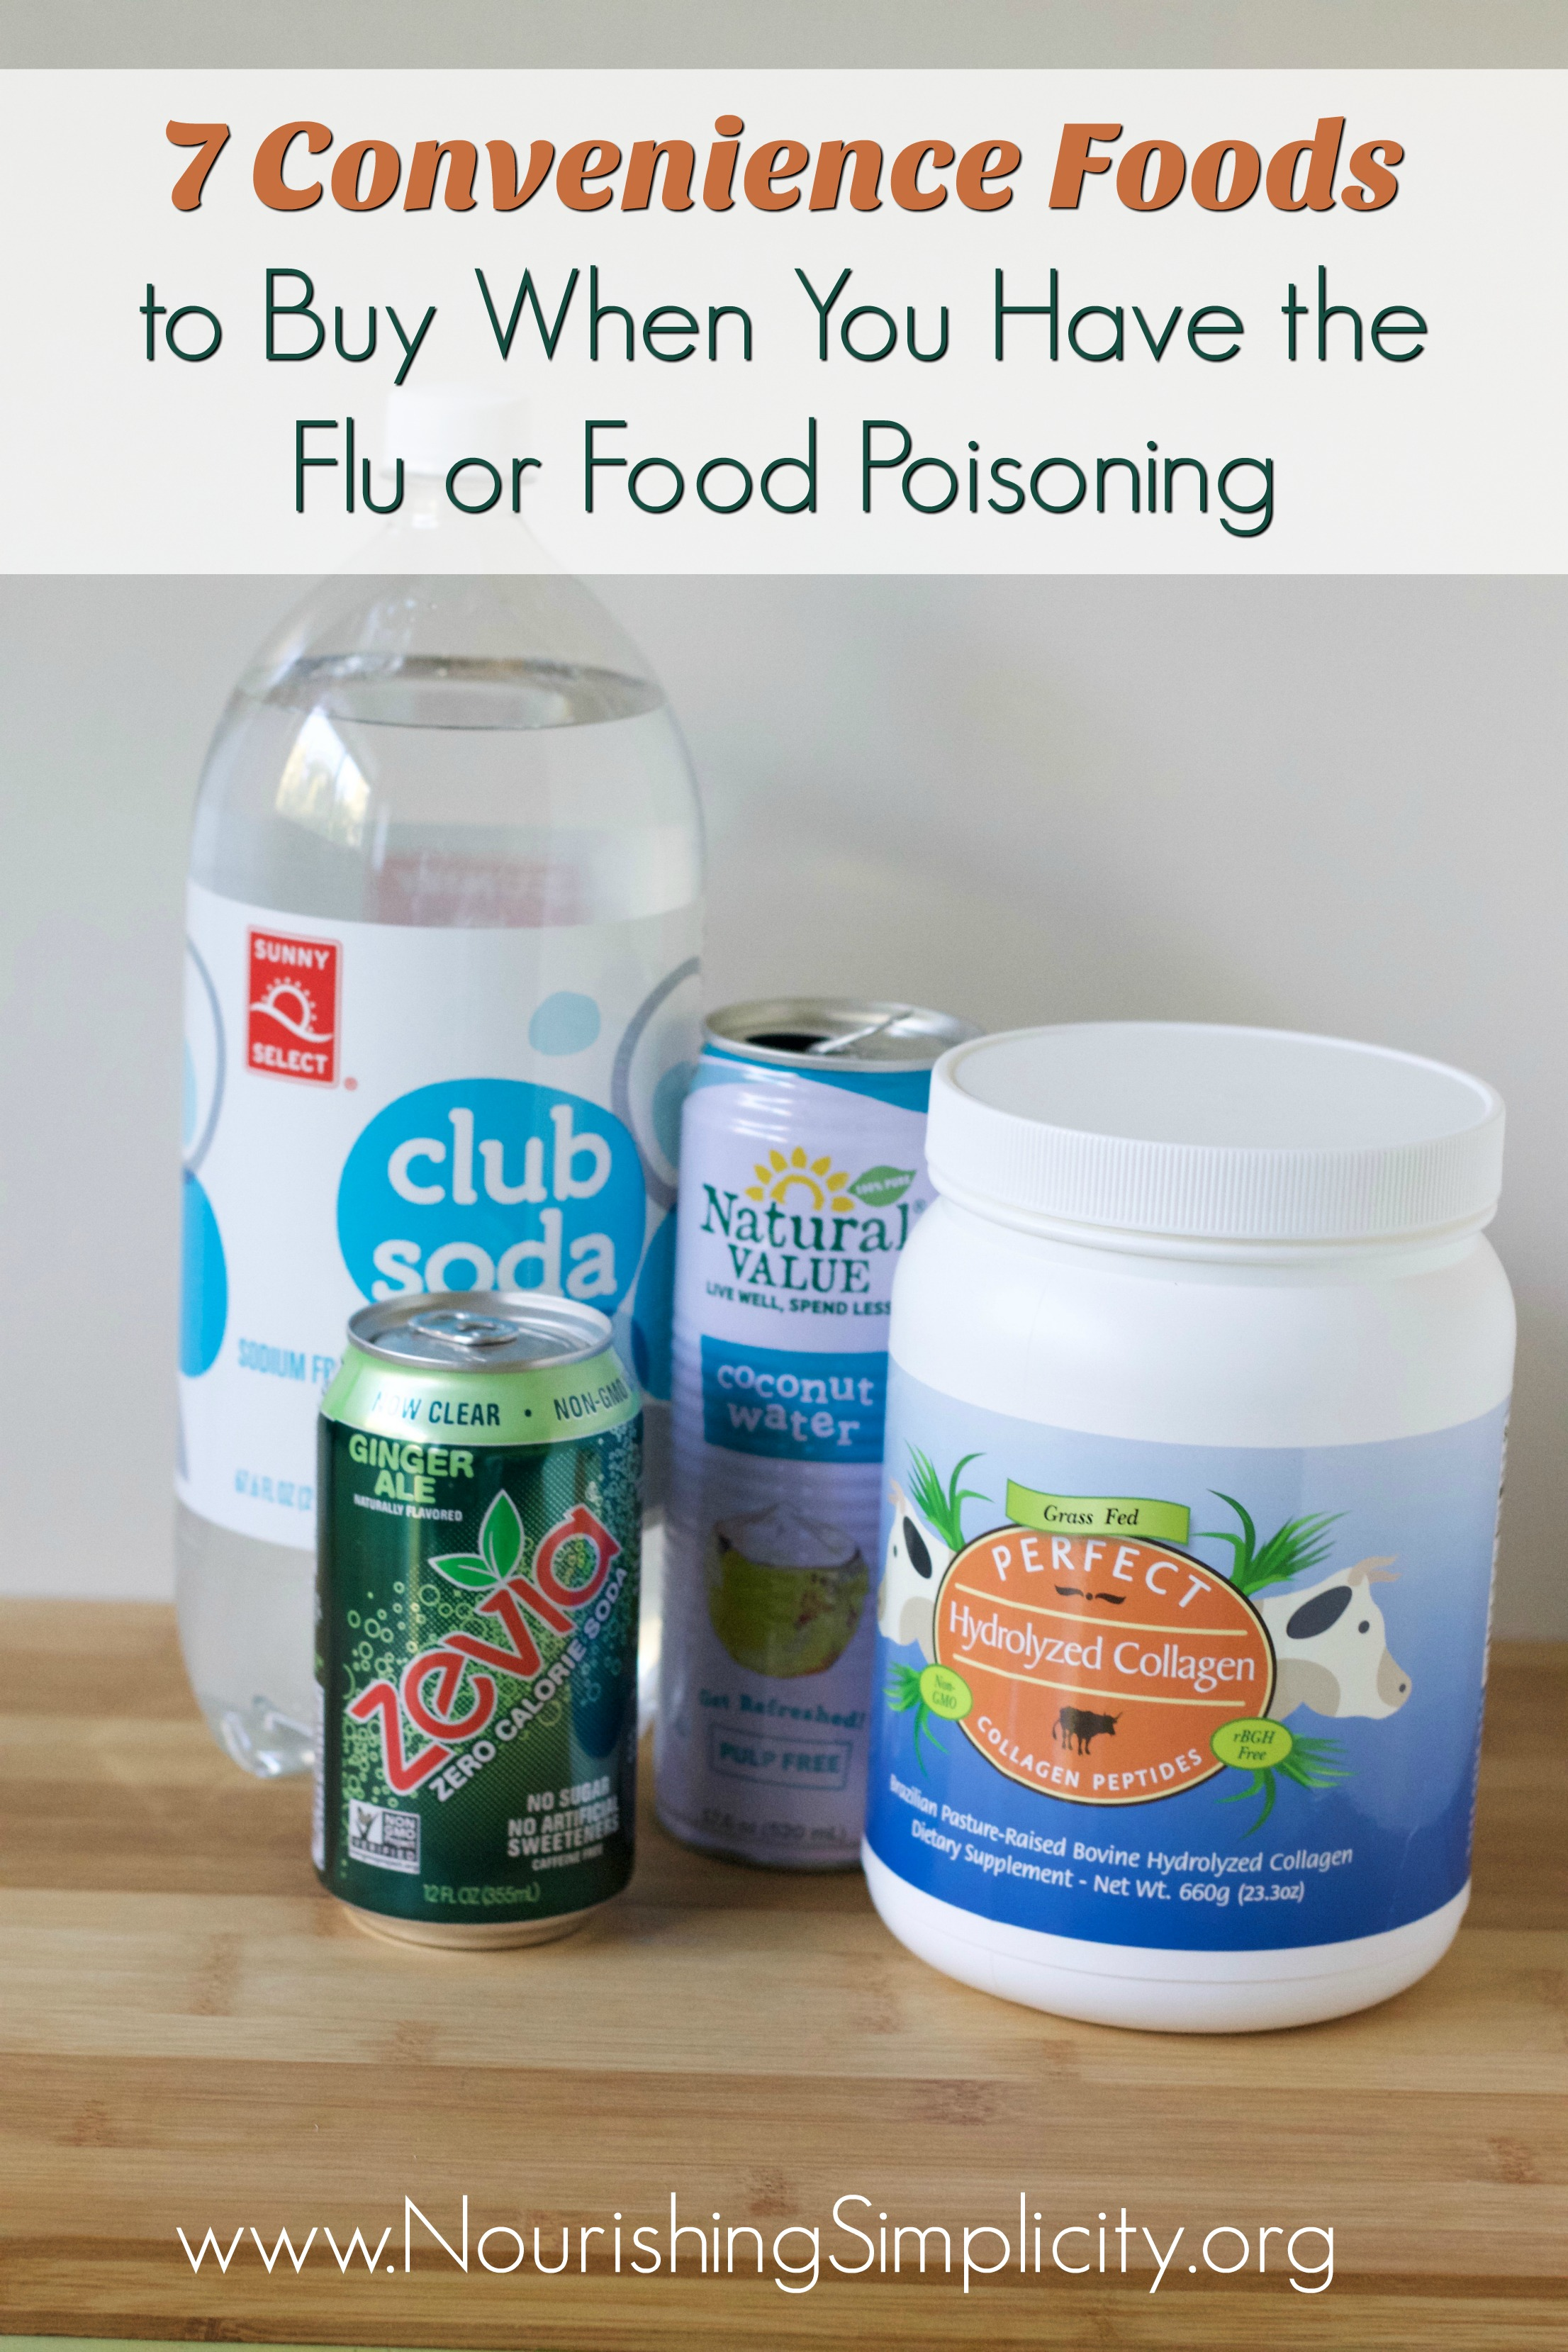 Convenience Foods to Buy When You Have the Flu or Food Poisoning-www.nourishingsimplicity.org